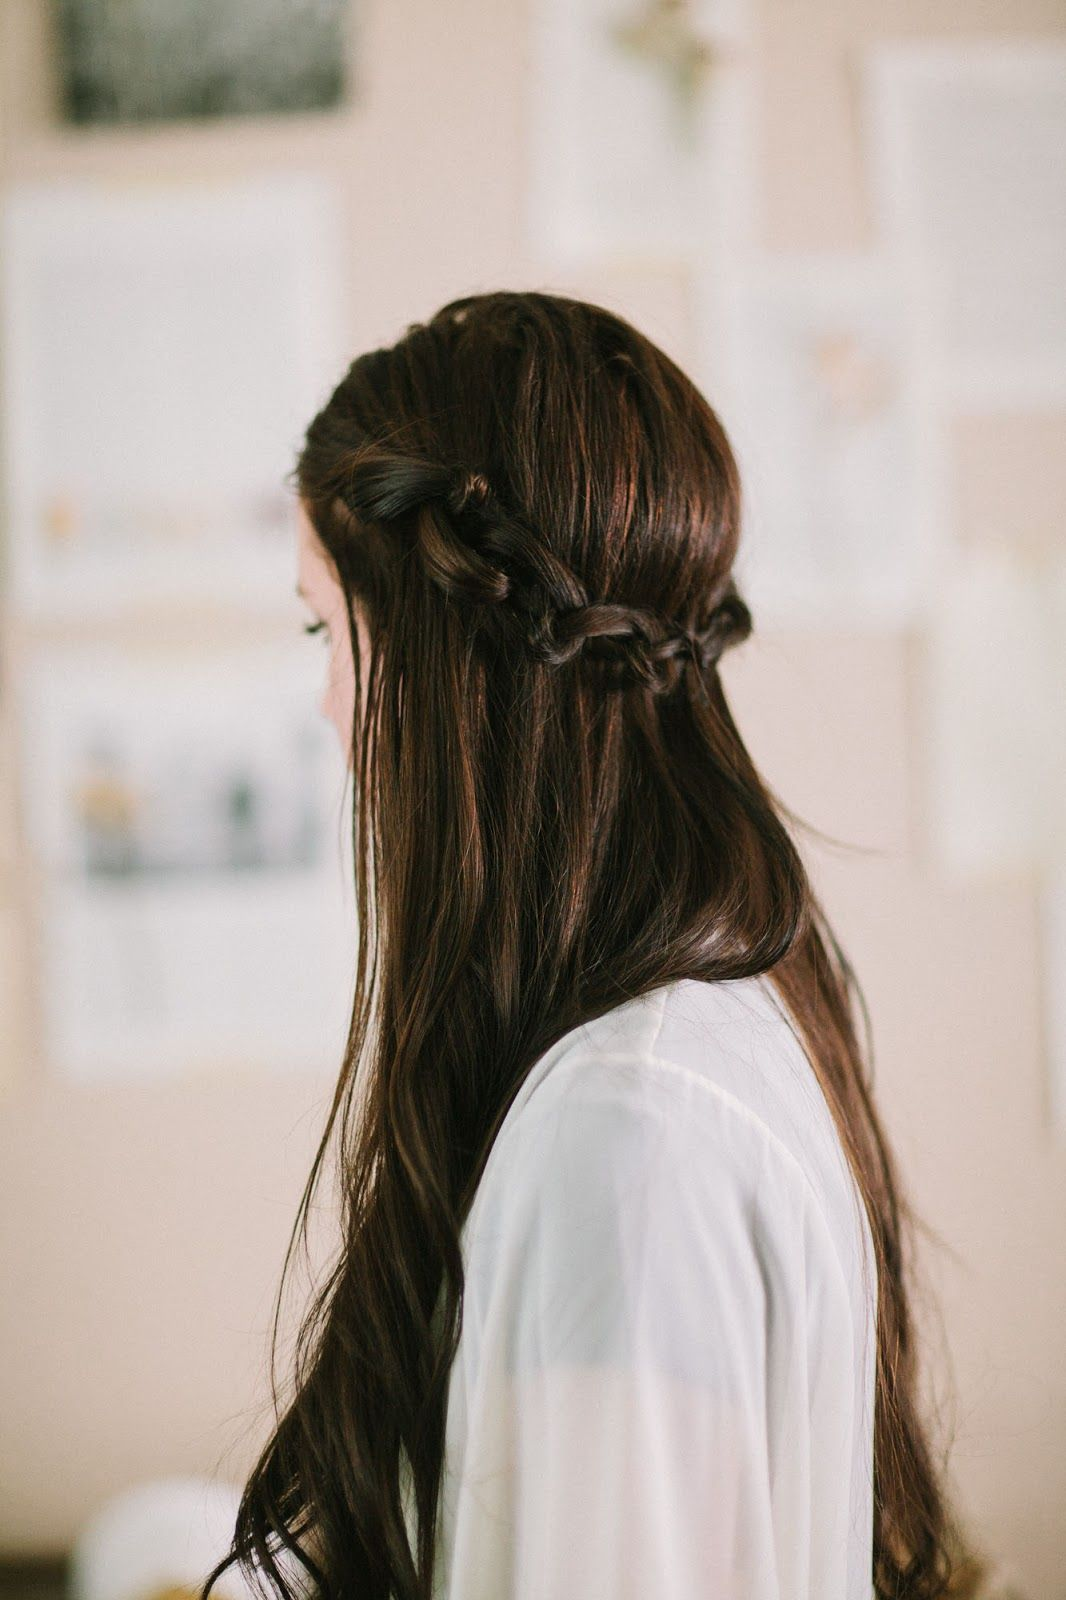 Hziangbd long hair sometimes care pinterest crown hair